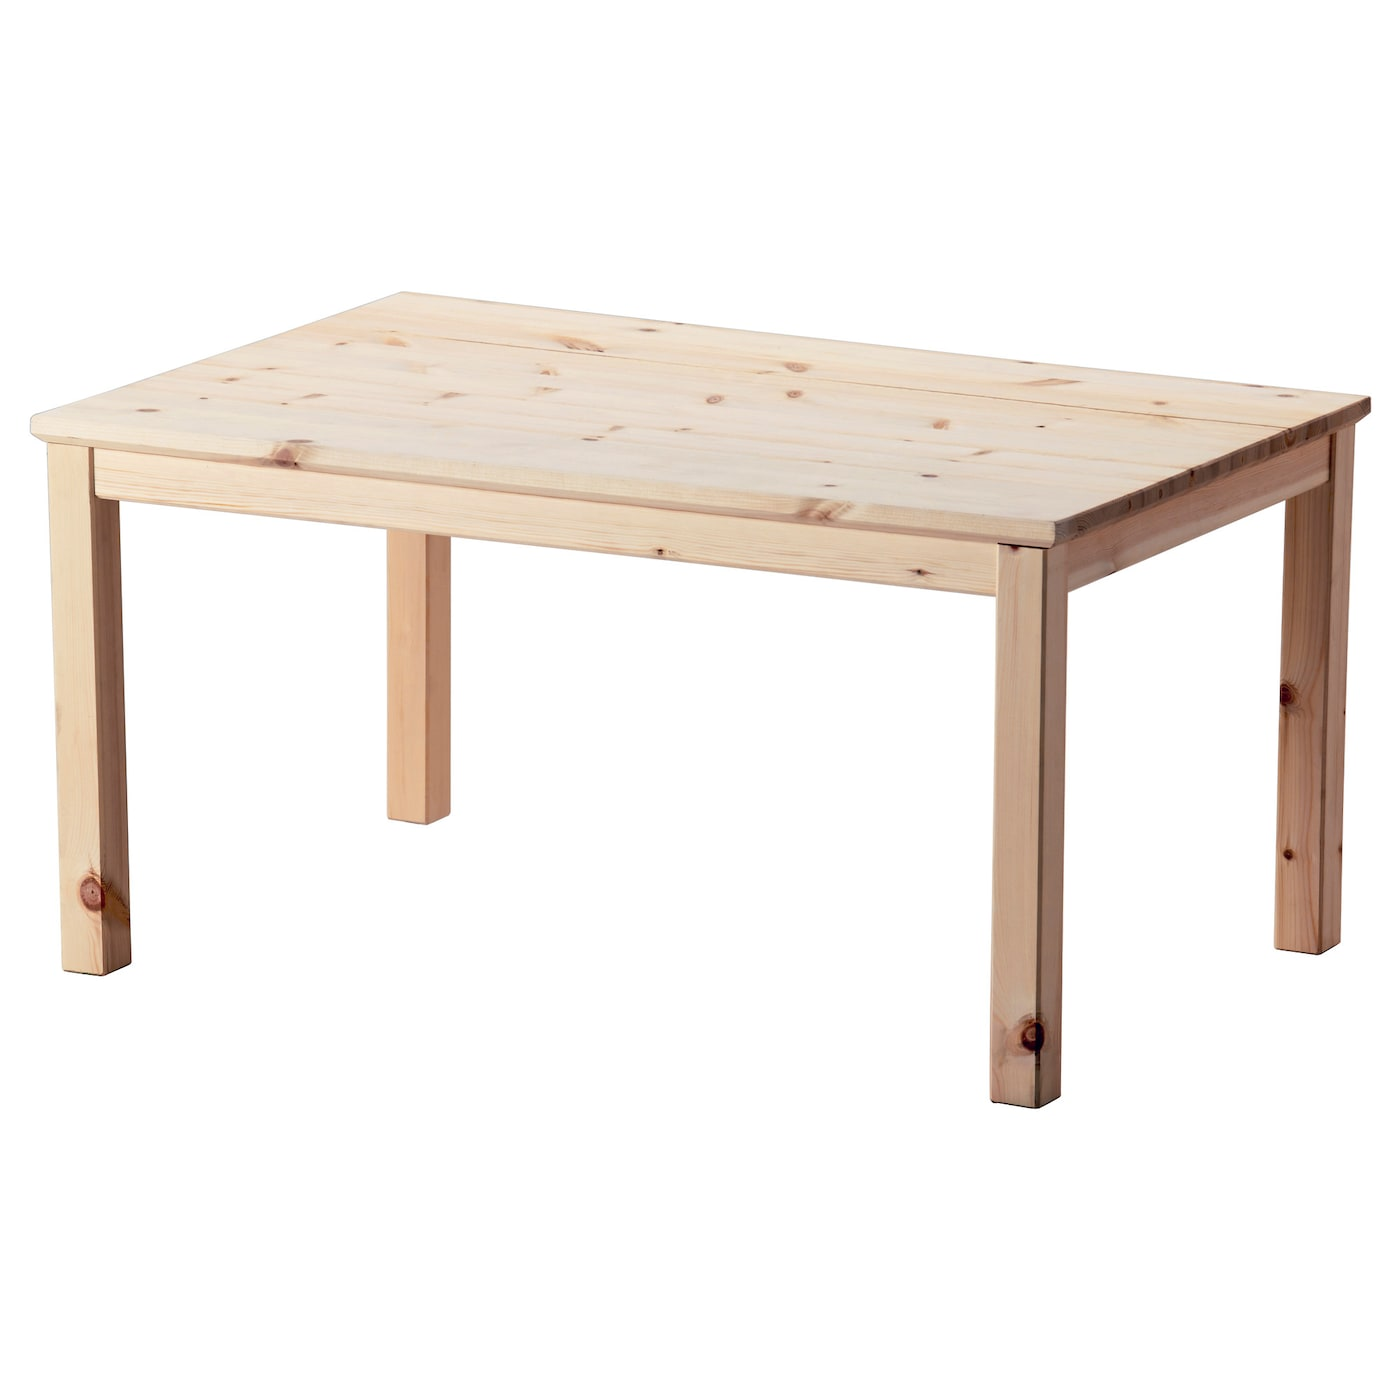 "NORN""S Coffee table Pine 89x59 cm IKEA"